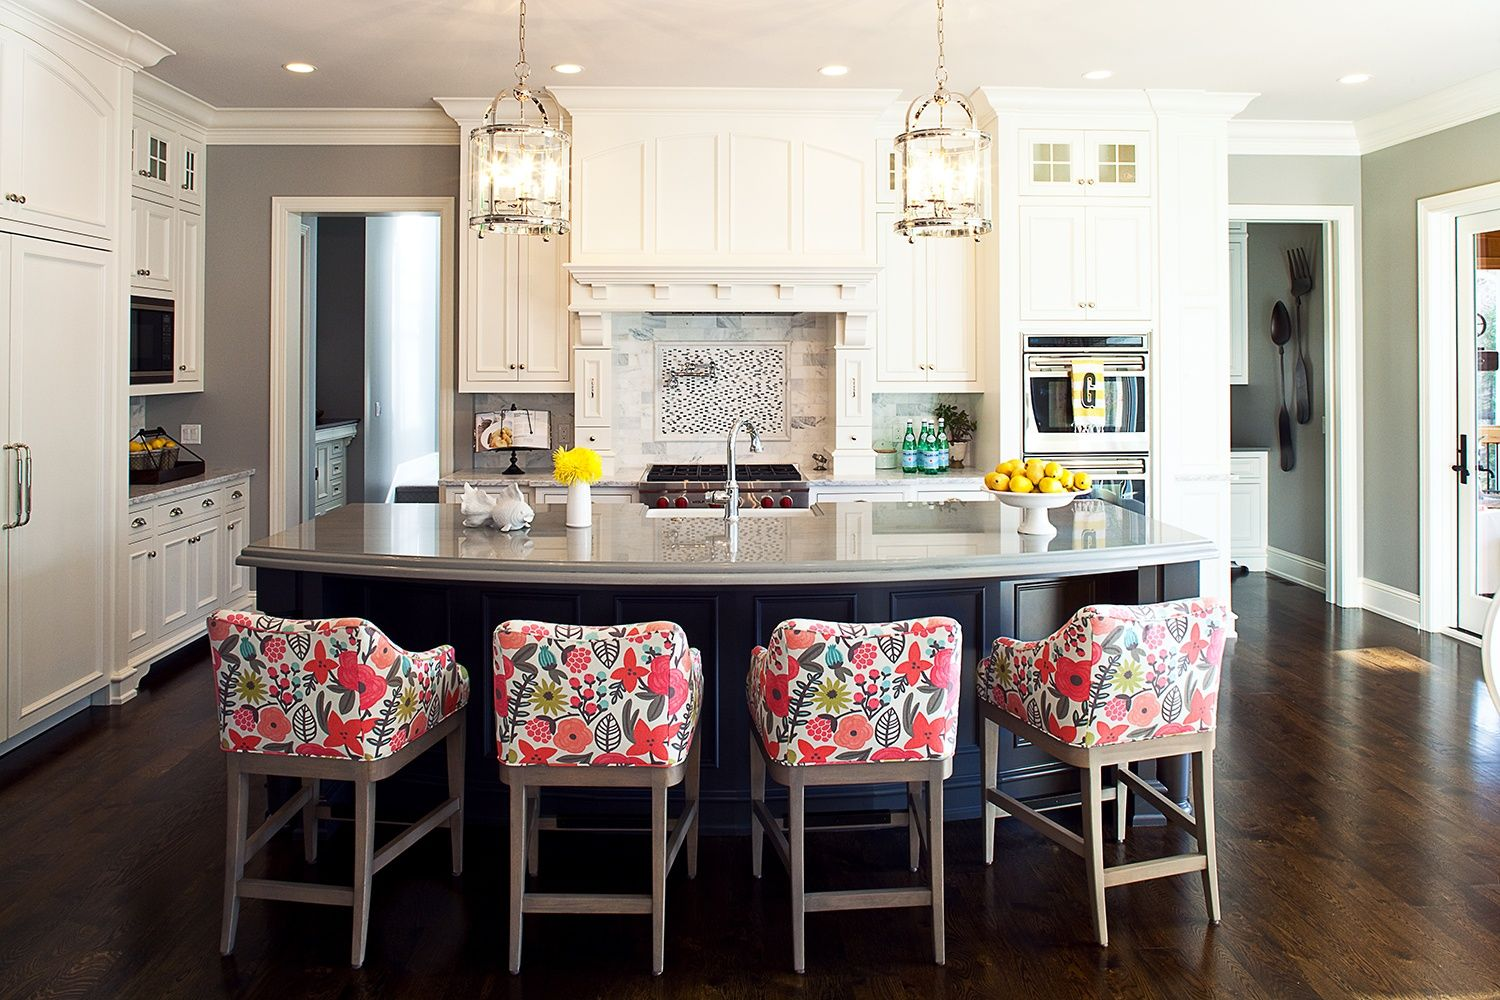 100 Kitchen Chairs Design Ideas. Red painted soft backrests for dining area stools look amazing